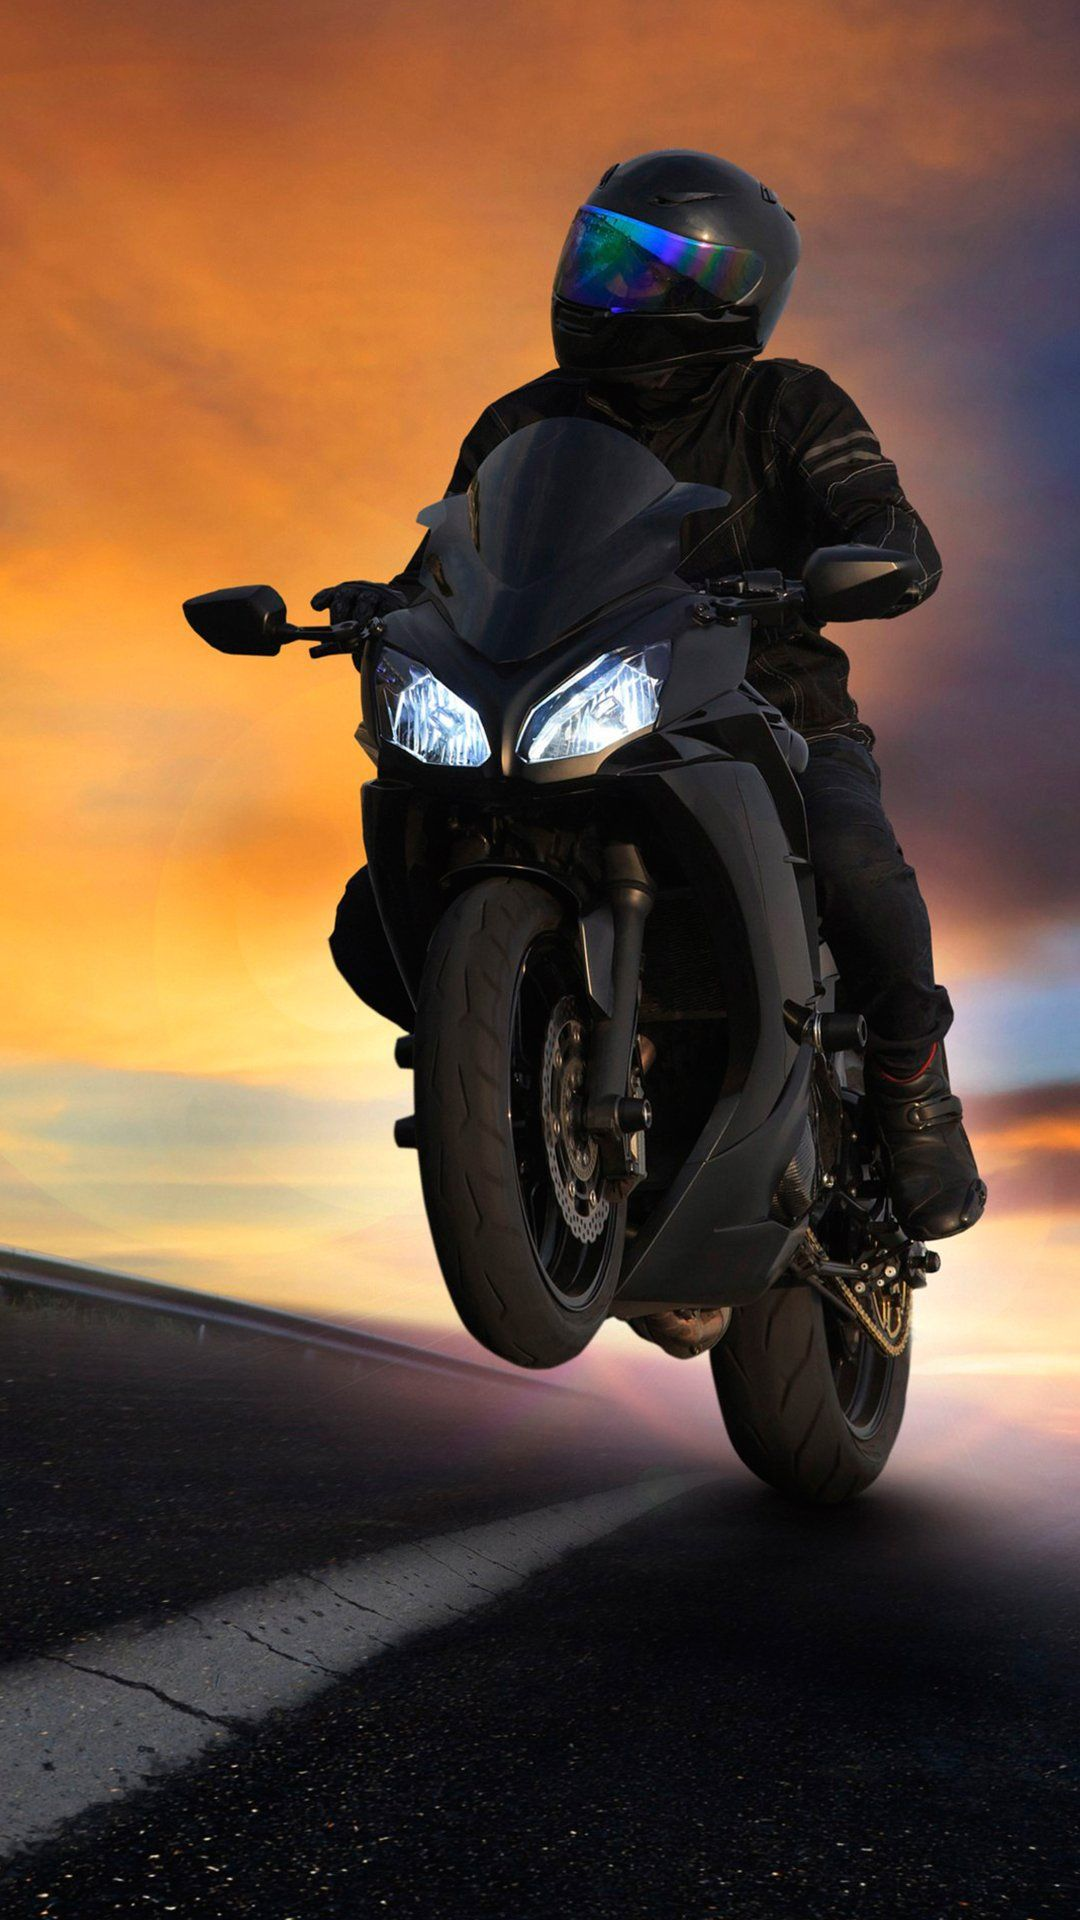 Empirewalls On With Images Motorcycle Wallpaper Black